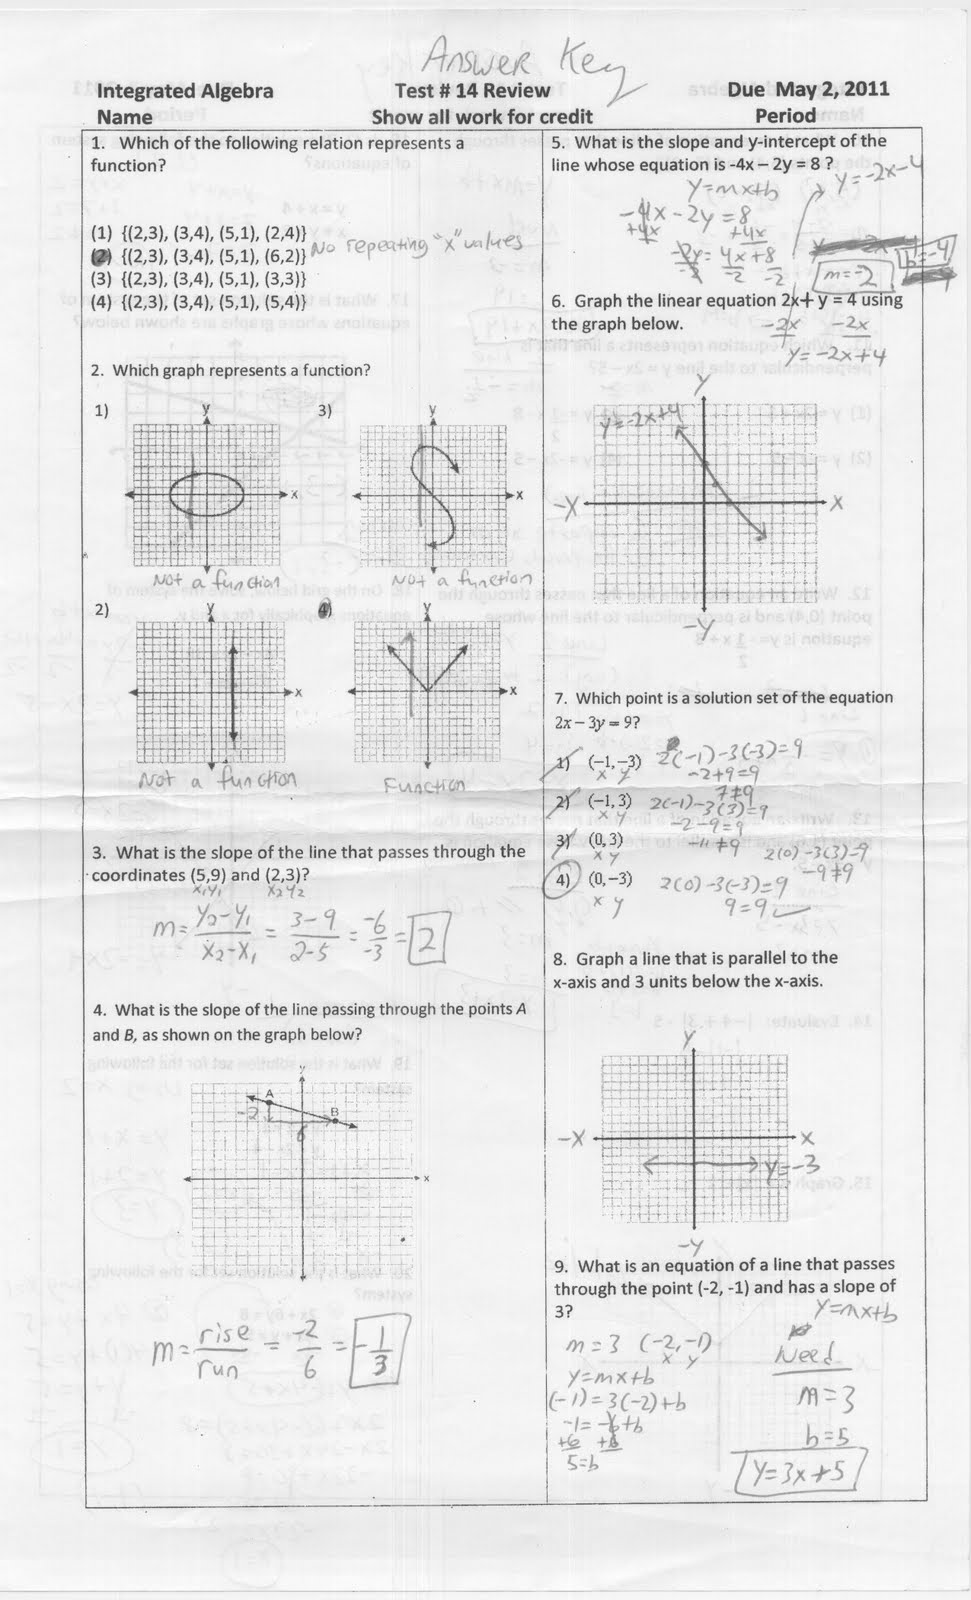 Mr. Napoli's Algebra: Test 14 Review Answer Key